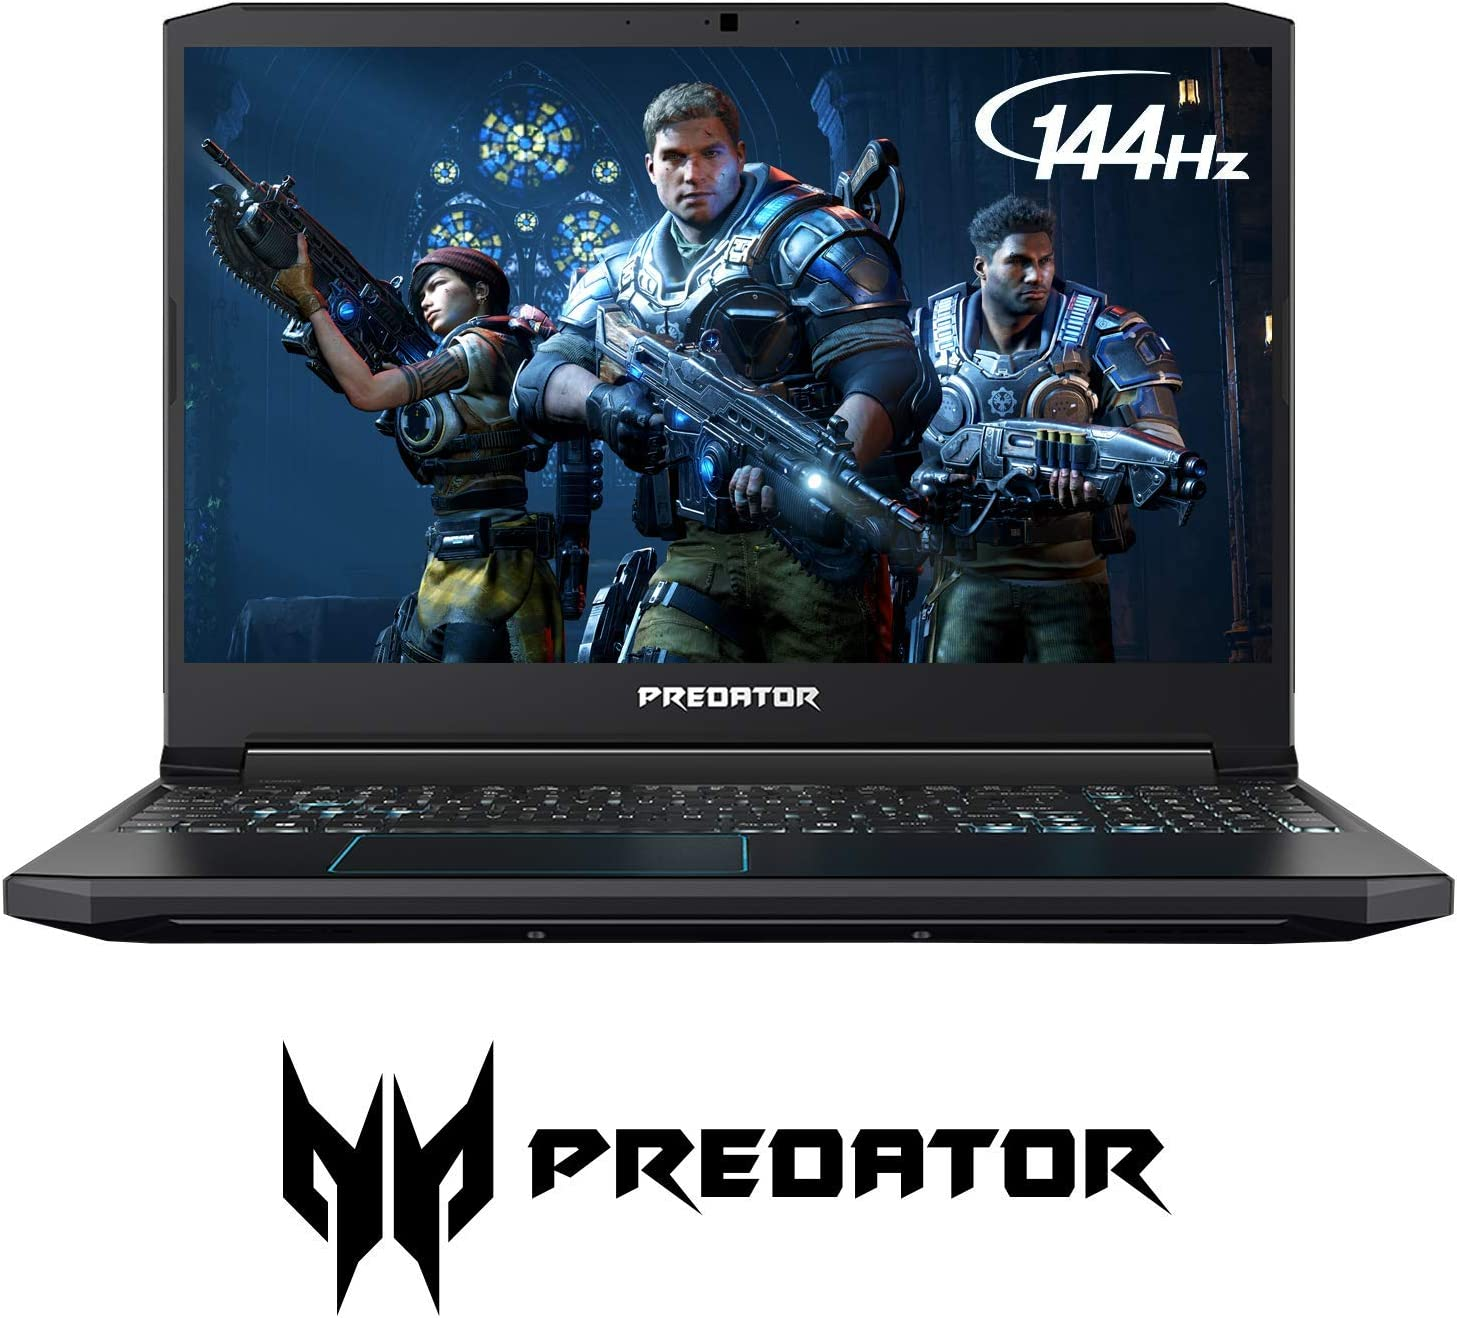 "2019 Acer Predator Helios 300 Gaming Laptop, 15.6"" FHD 144Hz 3ms IPS Display, 9th Gen Intel 6-Core i7-9750H Upto 4.5GHz, GTX 1660 Ti 6GB, 32GB RAM, 1TB PCIe SSD + 1TB HDD, Backlit Keyboard, Windows 10"